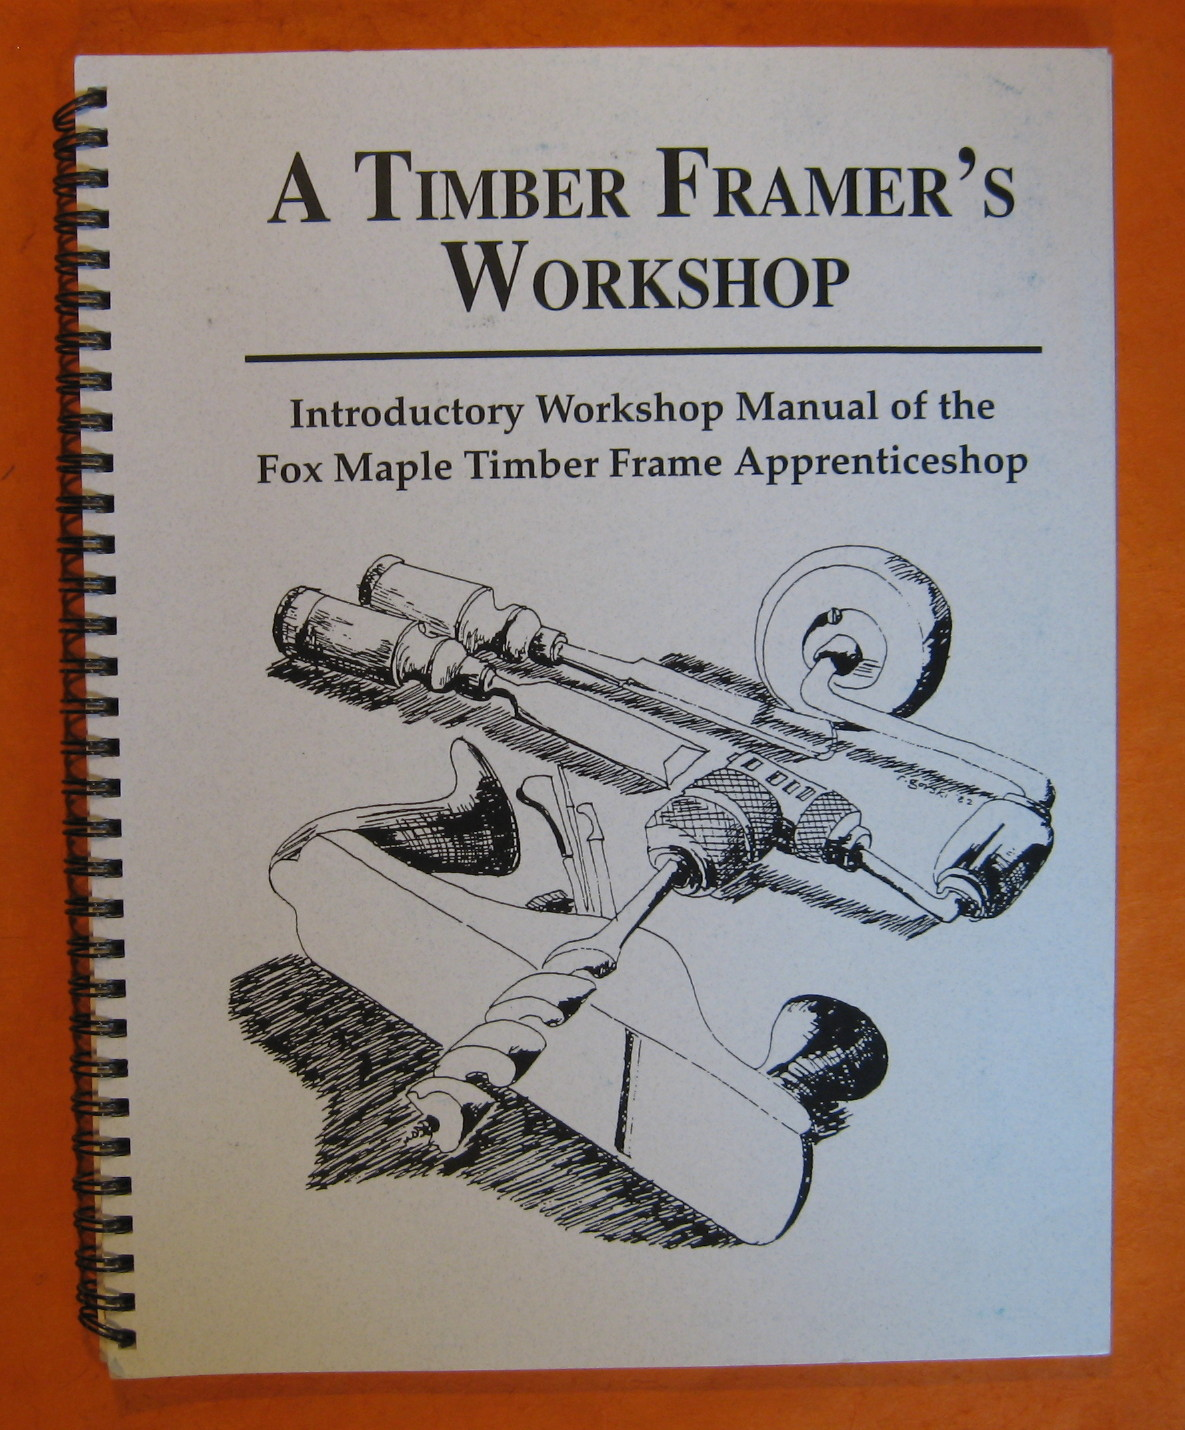 A Timber Framer's Workshop: Indroductory Workshop Manual of the Fox Maple Timber Frame Apprenticeshop, Chappell, Steve